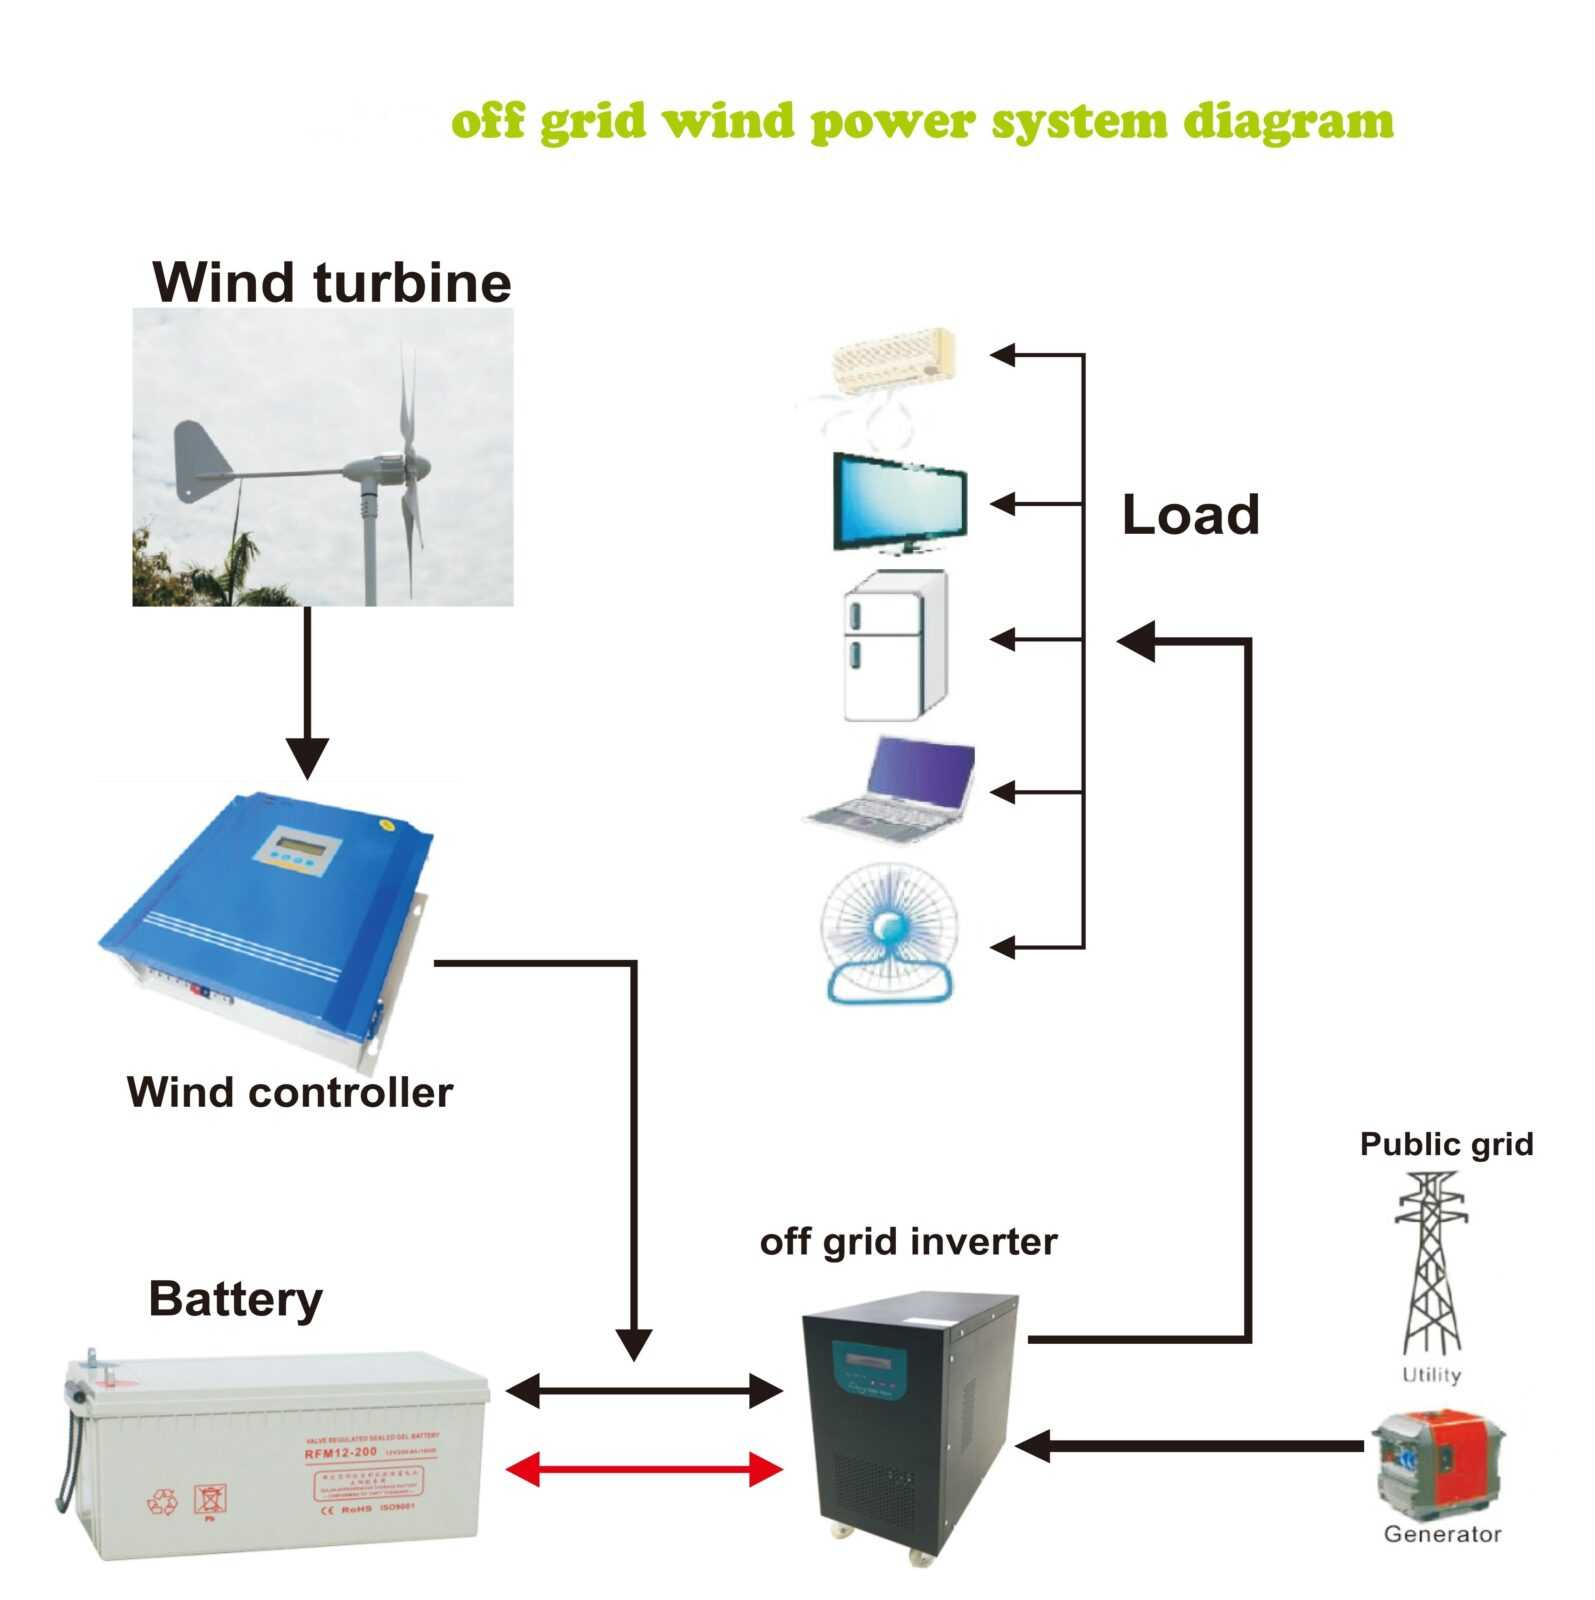 hight resolution of 300w off grid wind power system solar electricity systems 10kw system diagram also wind turbine schematic diagram further off grid